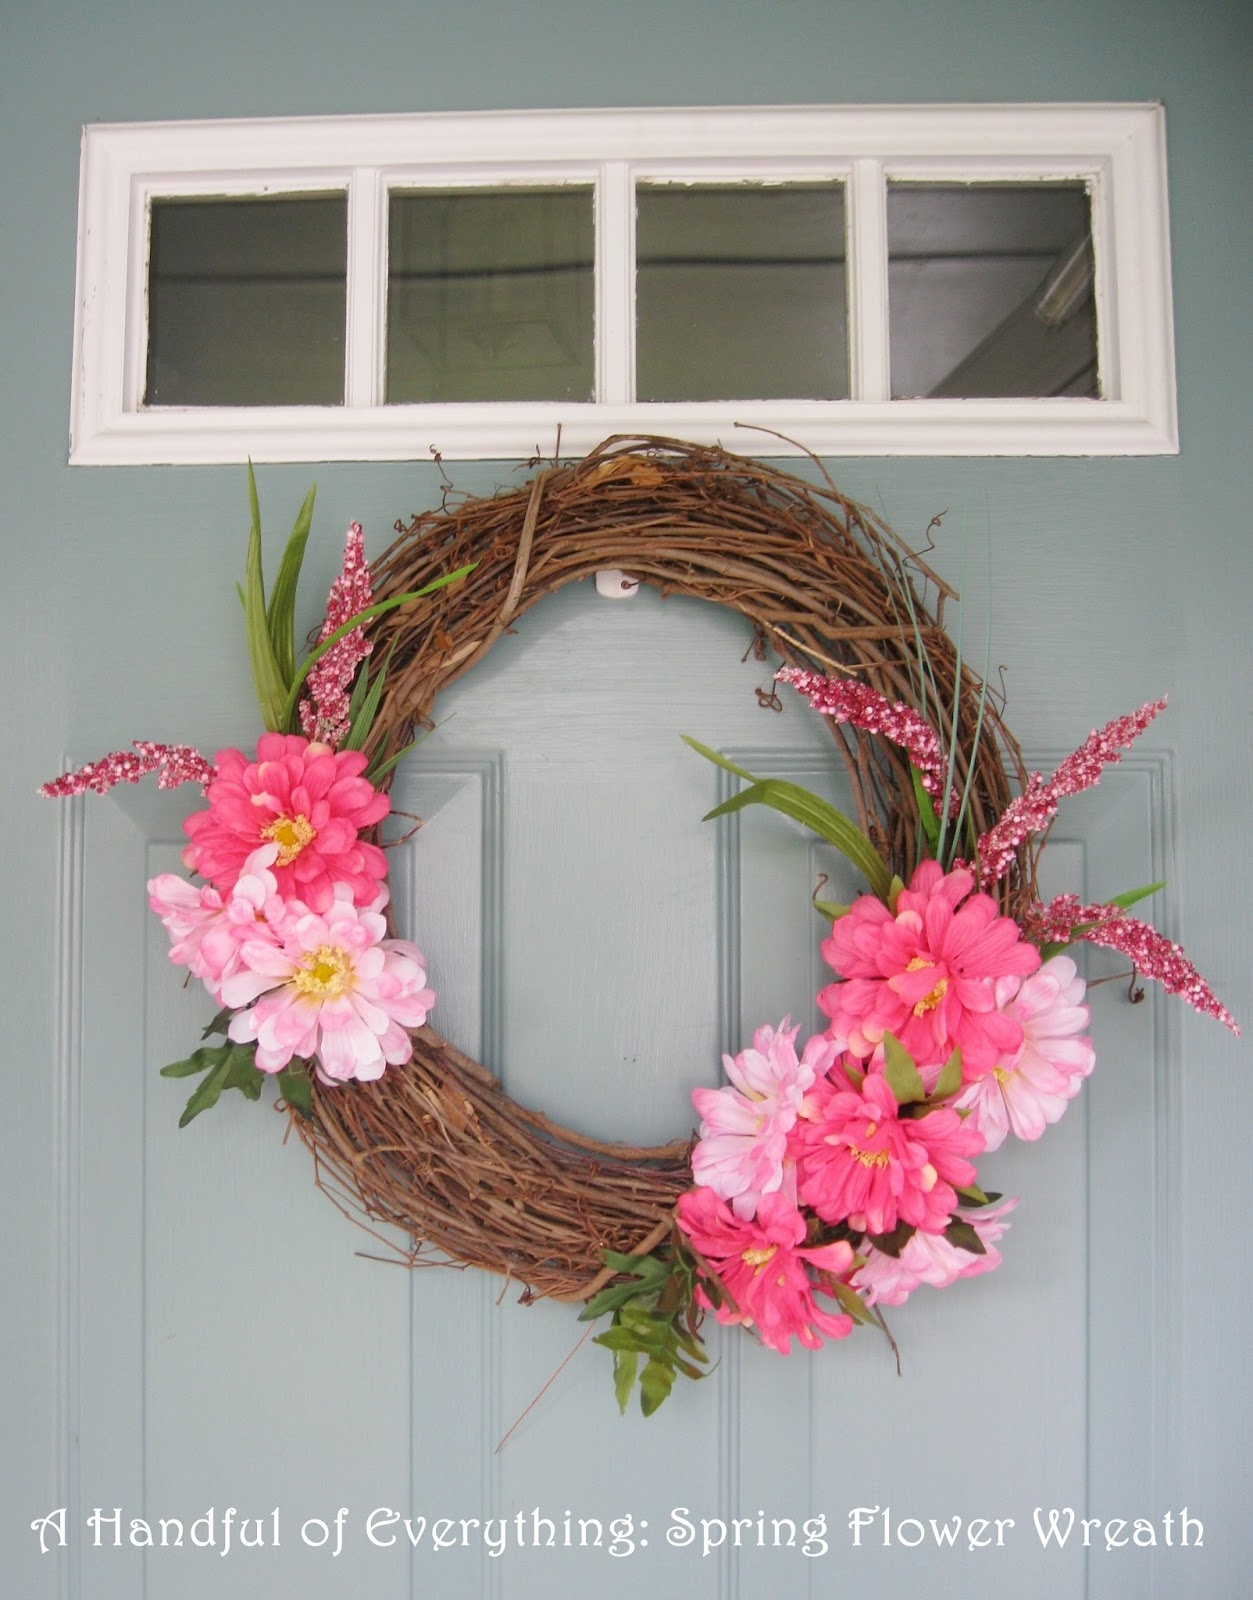 Modern Spring Floral Wreath |Spring Flower Wreath